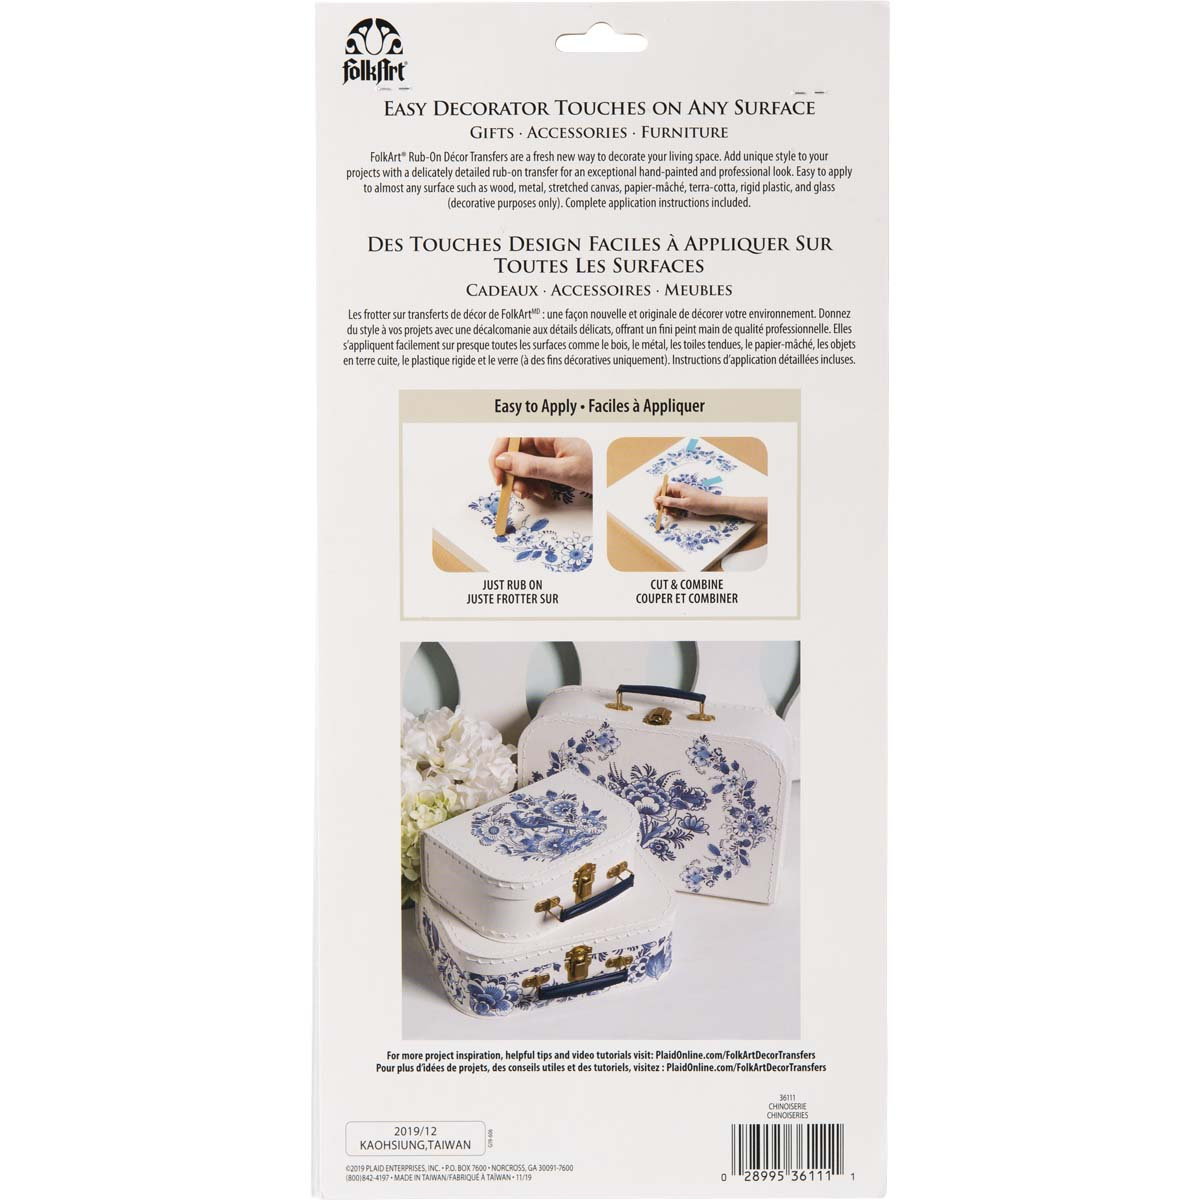 FolkArt ® Rub-On Décor Transfer - Chinoiserie, 3 pc. - 36111